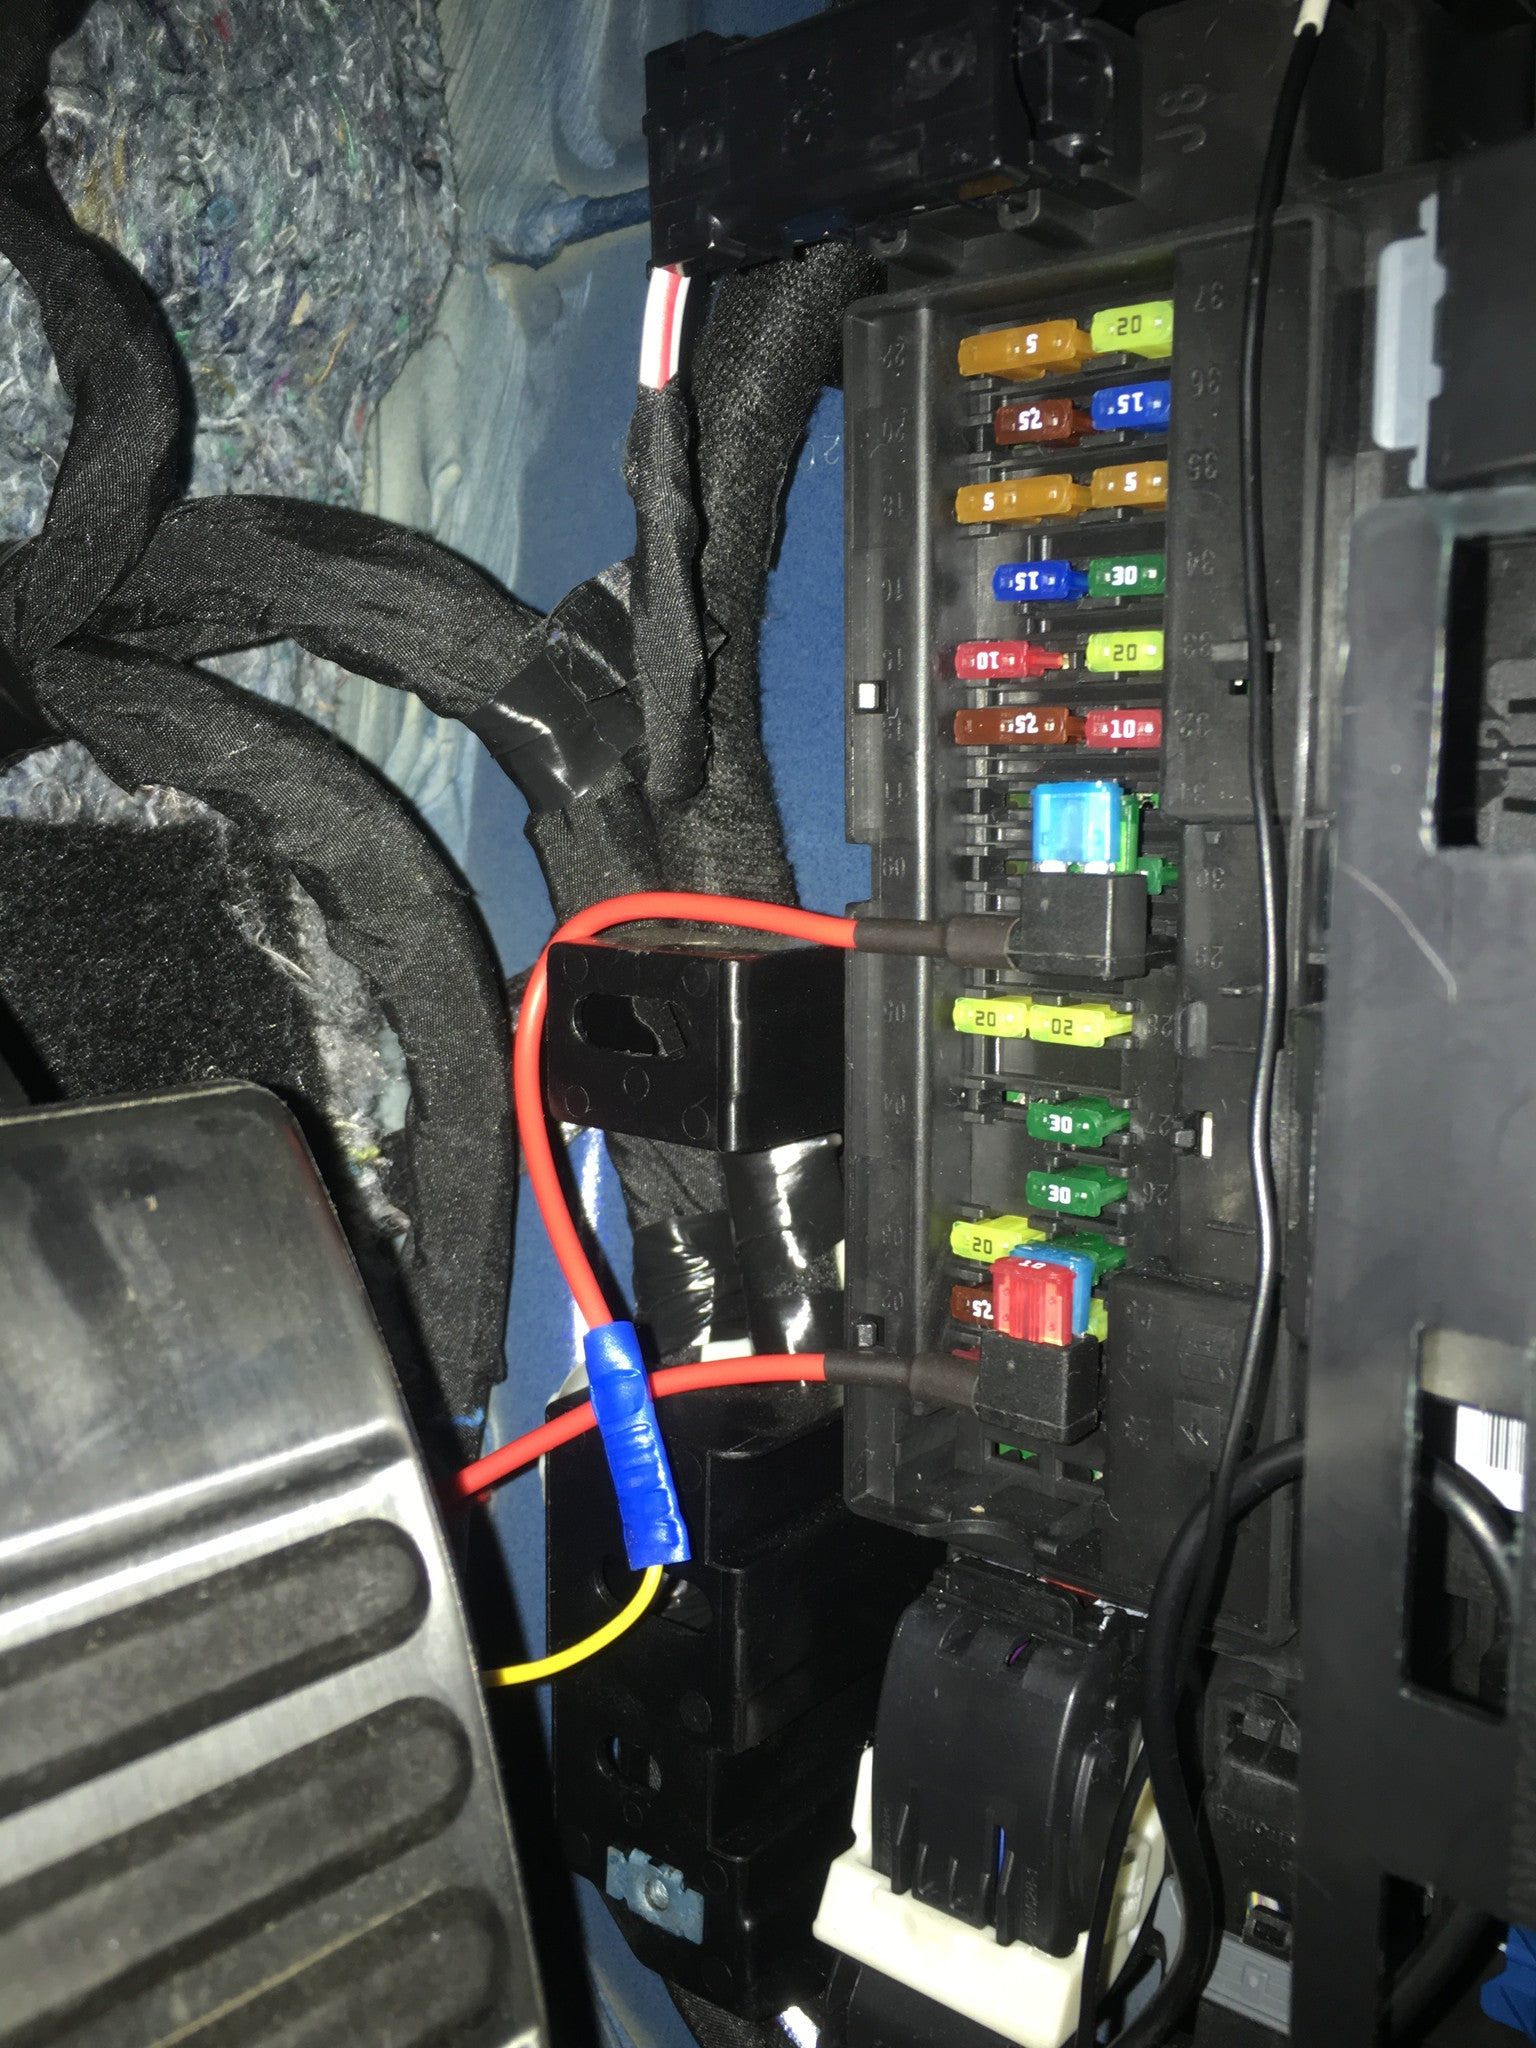 England Fuse Box Basic Wiring Diagram 2015 2017 Mustang Dashcam Internal Connection Euro Au Uk Rh Store Exoticponymods Com Rcd Cover